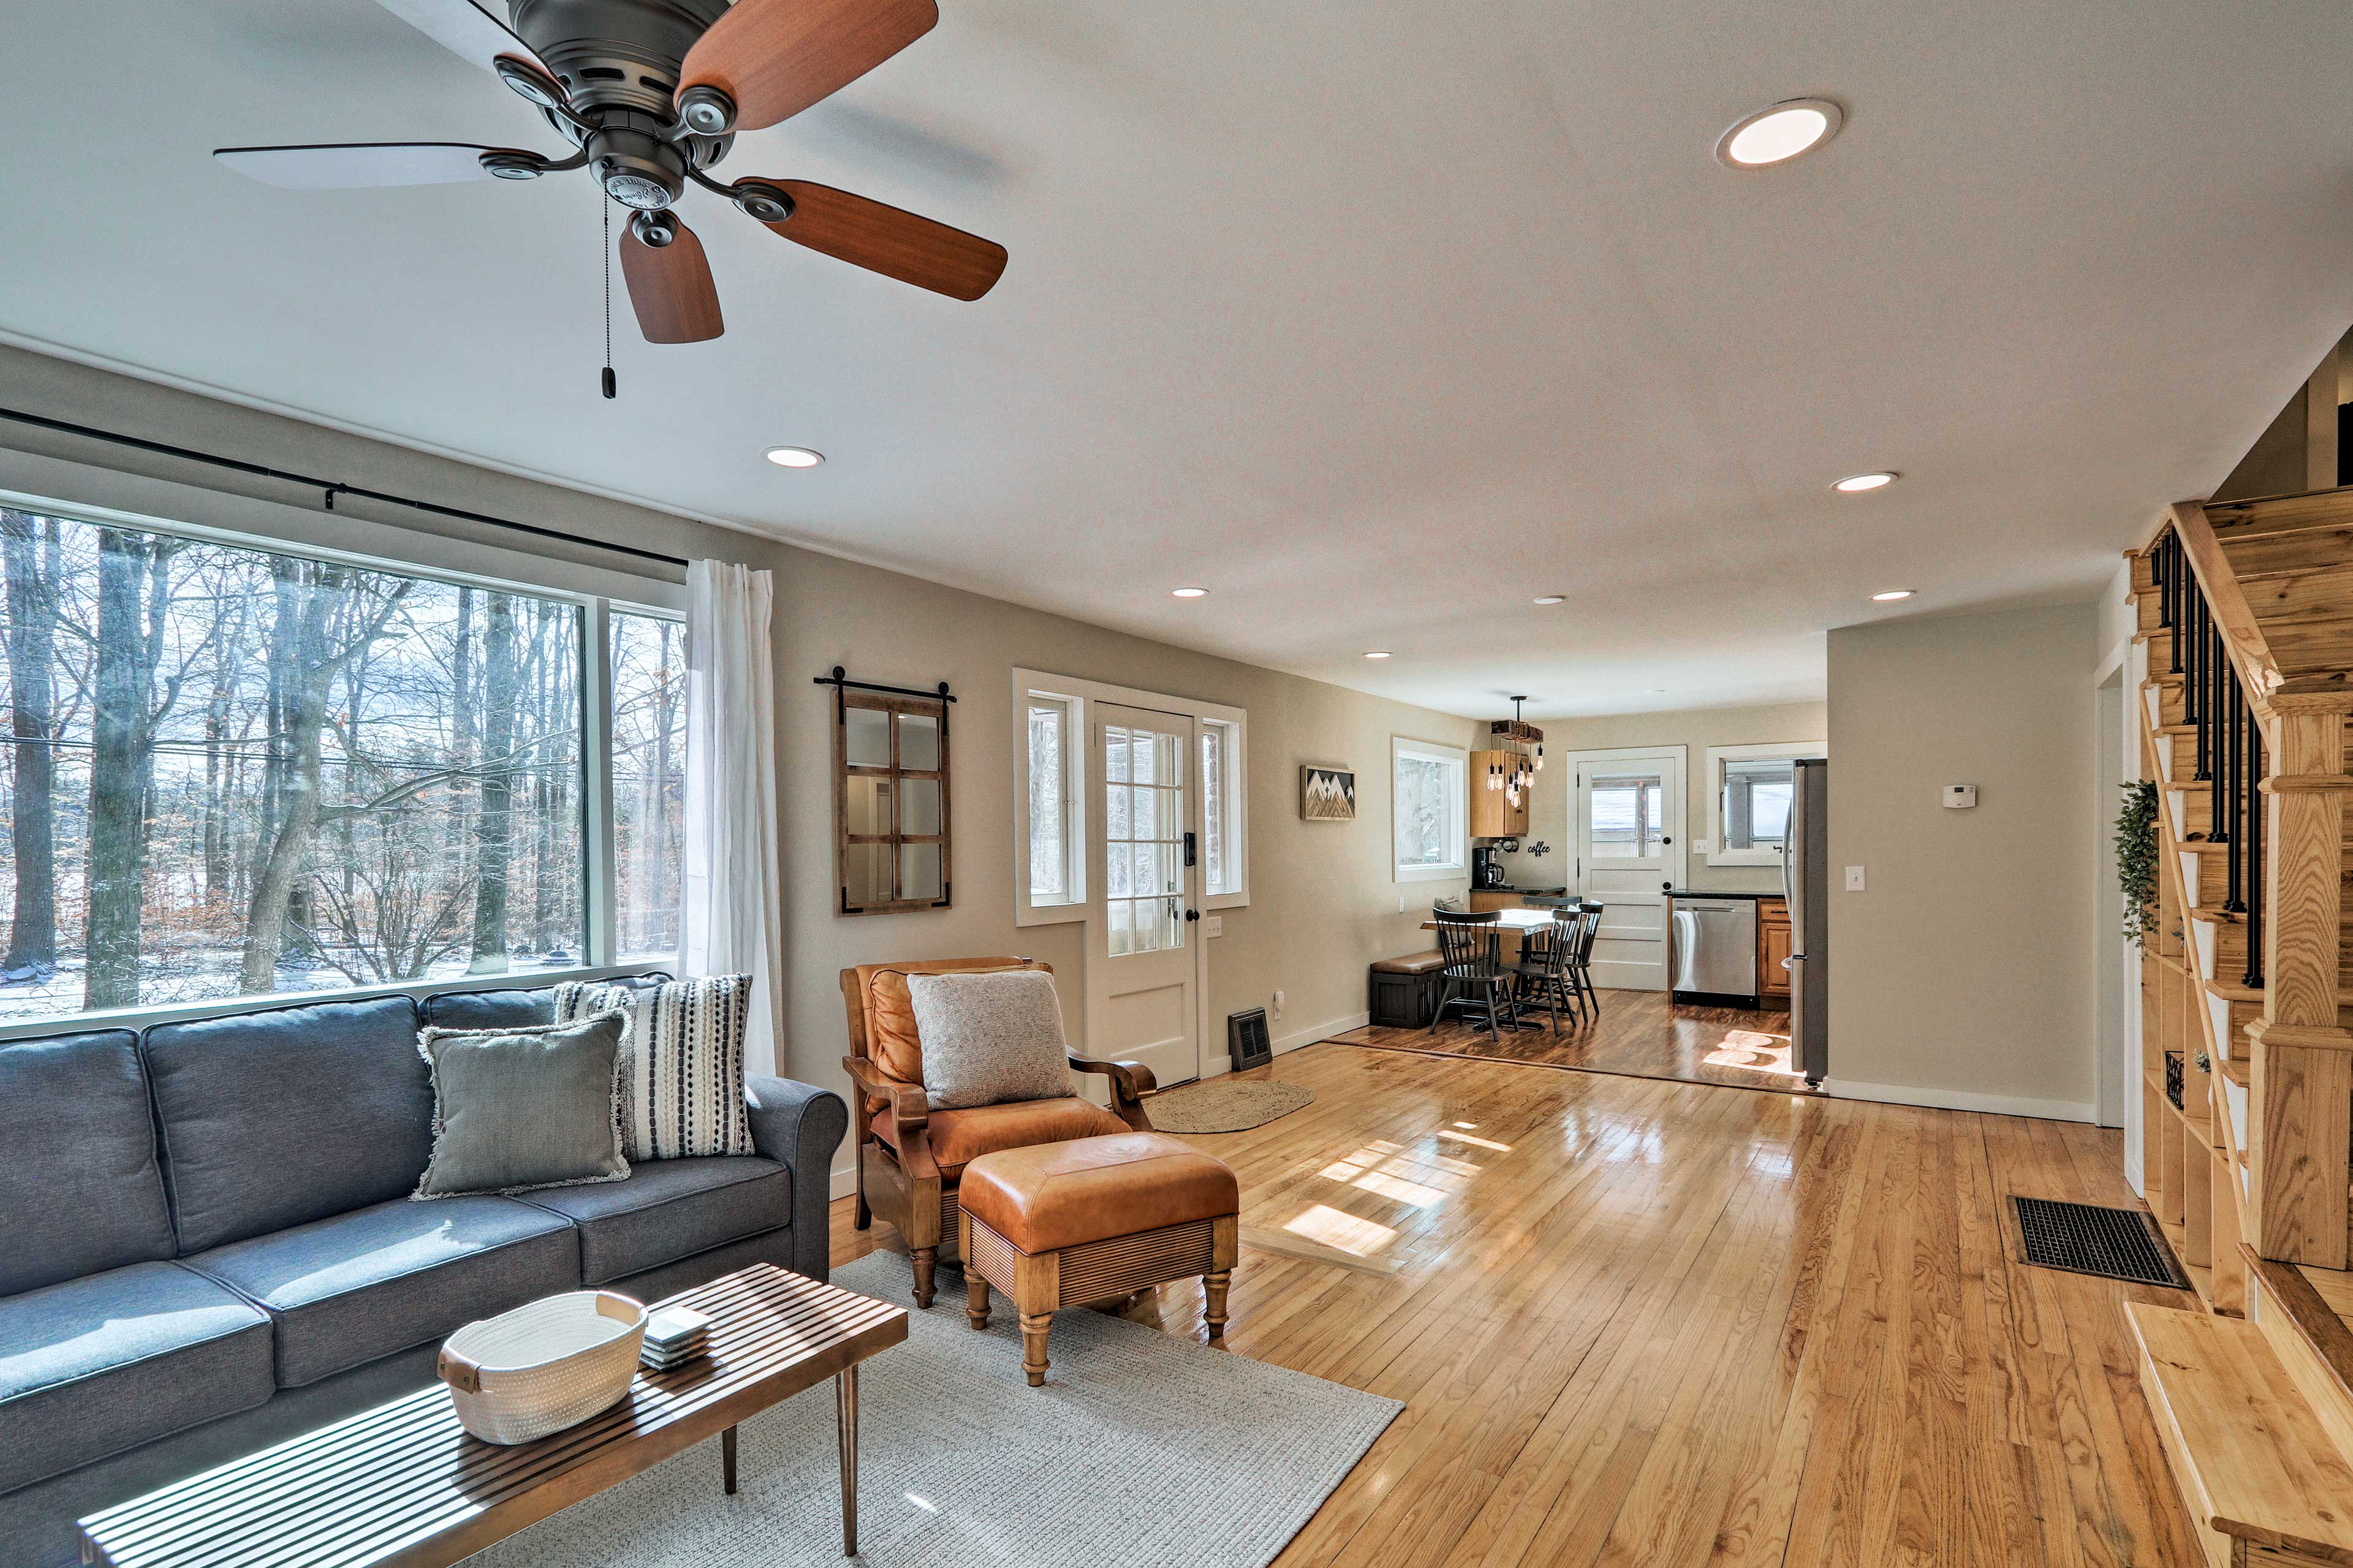 Keep cool using the ceiling fans throughout this home.